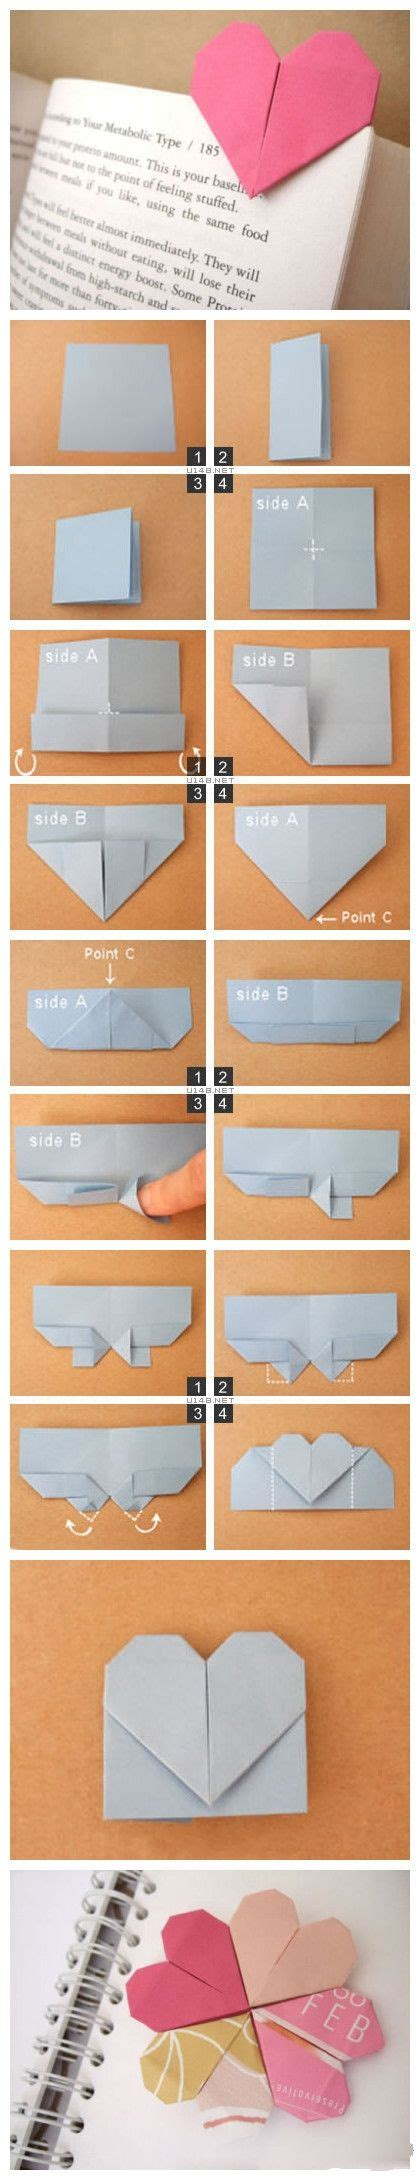 origami bookmark tutorial simple origami tutorial can be used as a